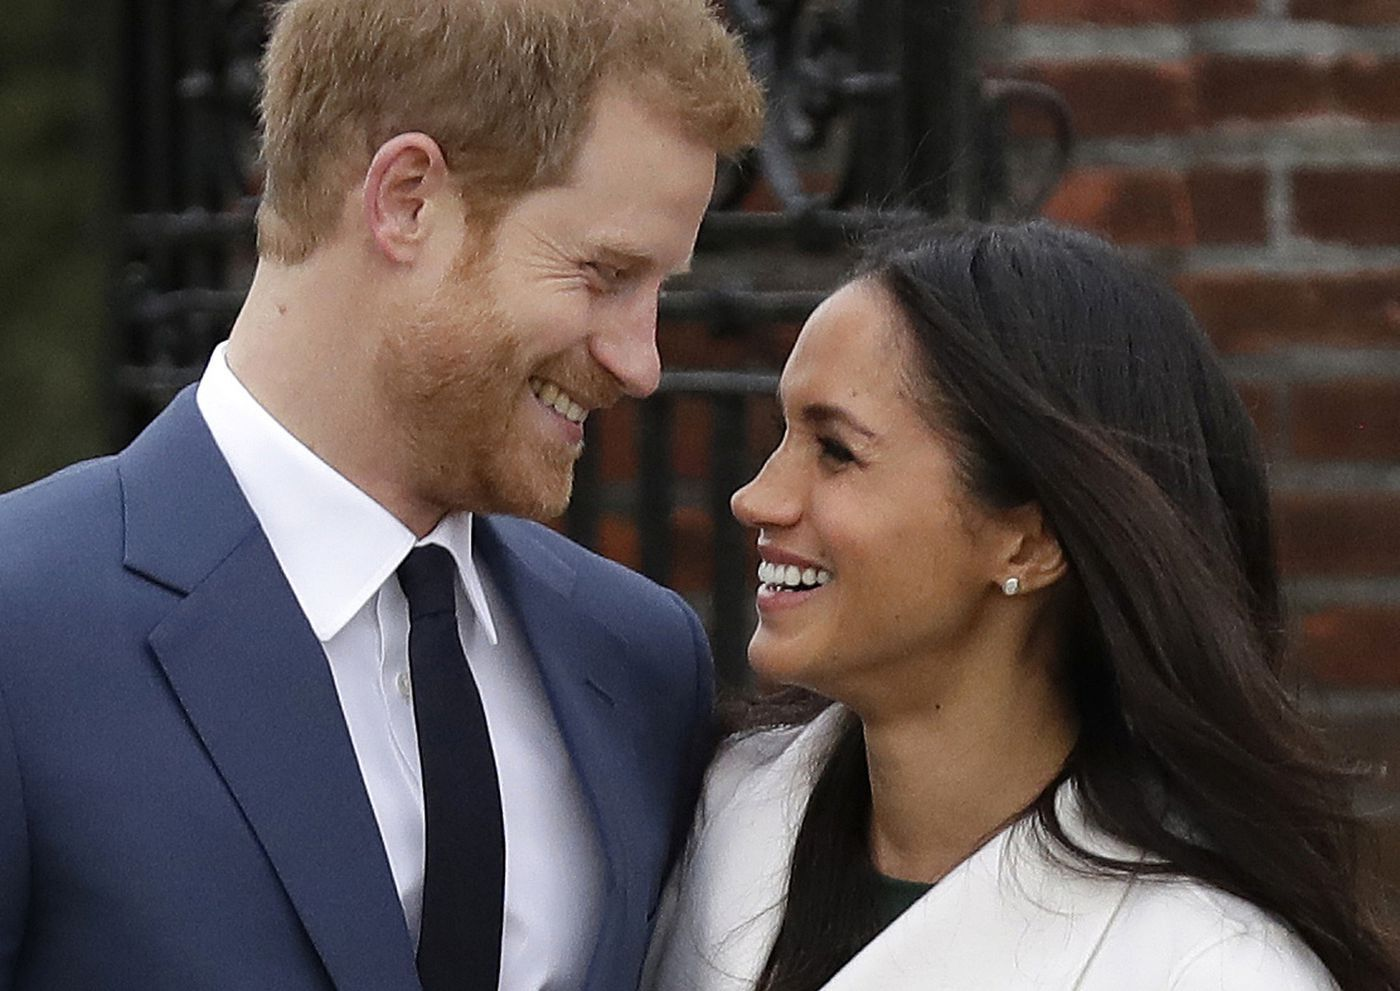 Royal Wedding Time In Us.What Time Is The Royal Wedding Everything You Need To Know About